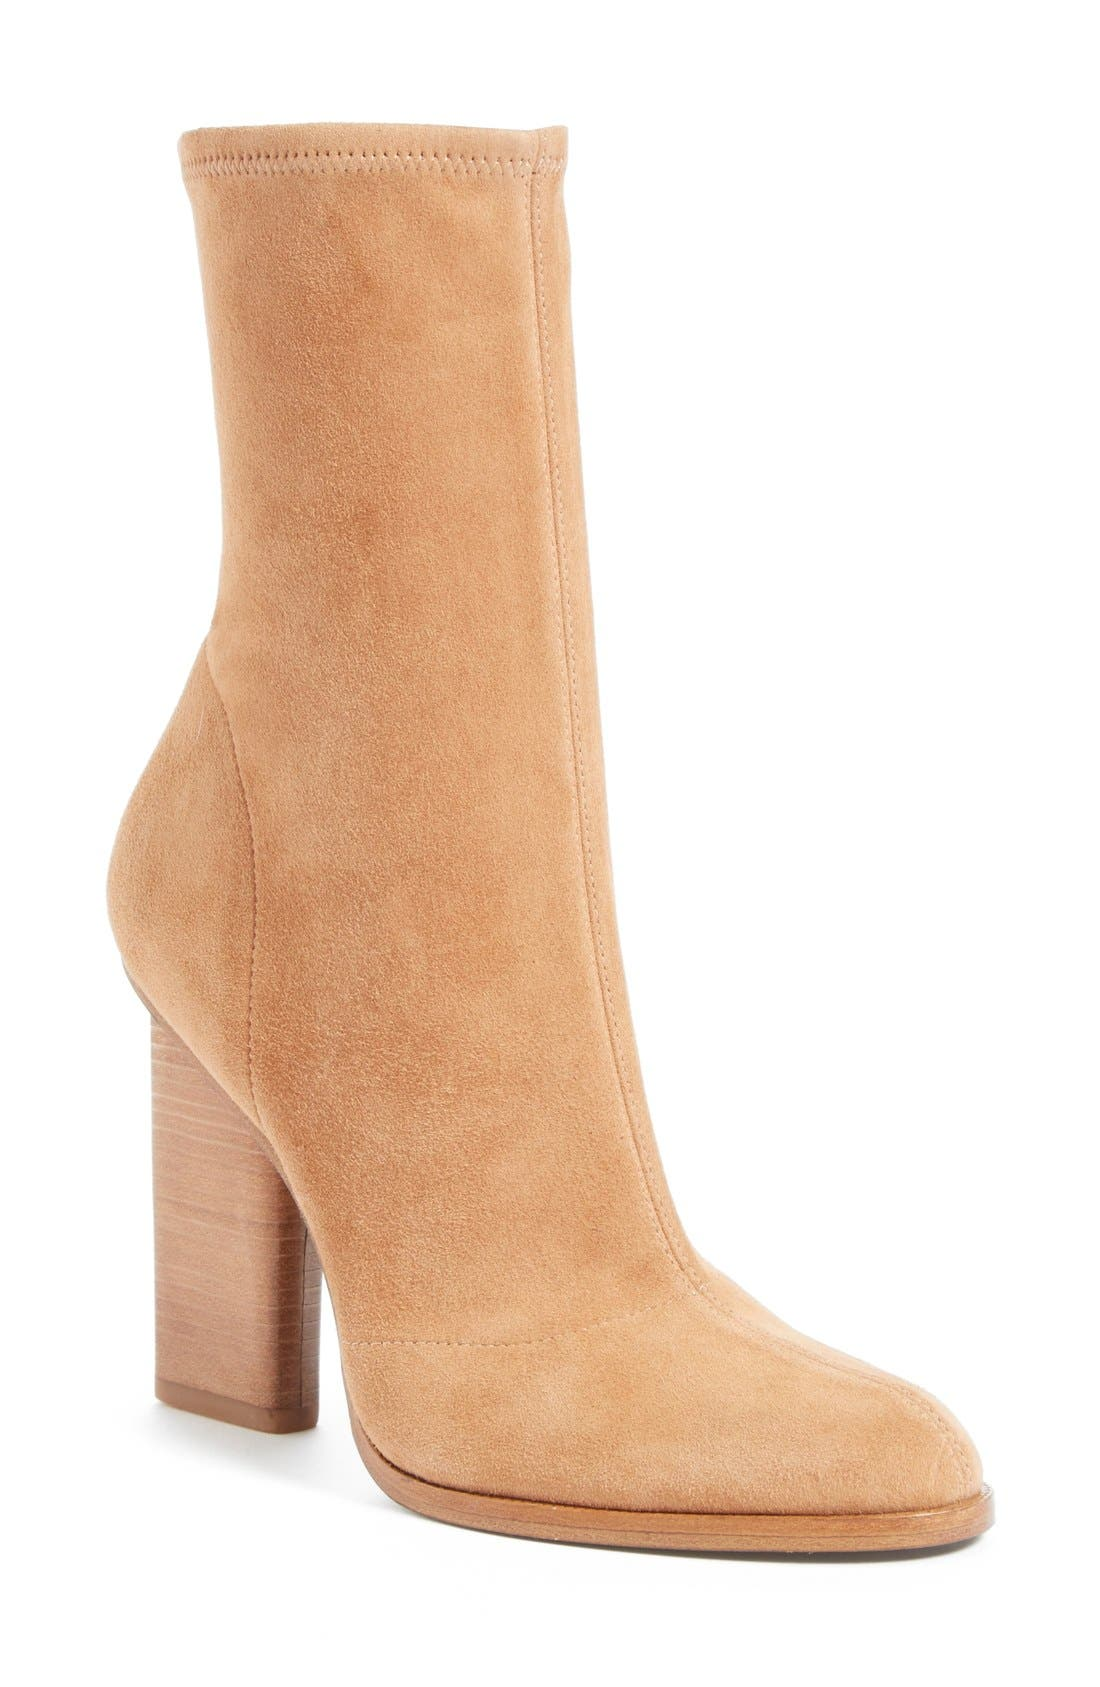 Alternate Image 1 Selected - Alexander Wang 'Gia' Stretch Boot (Women)